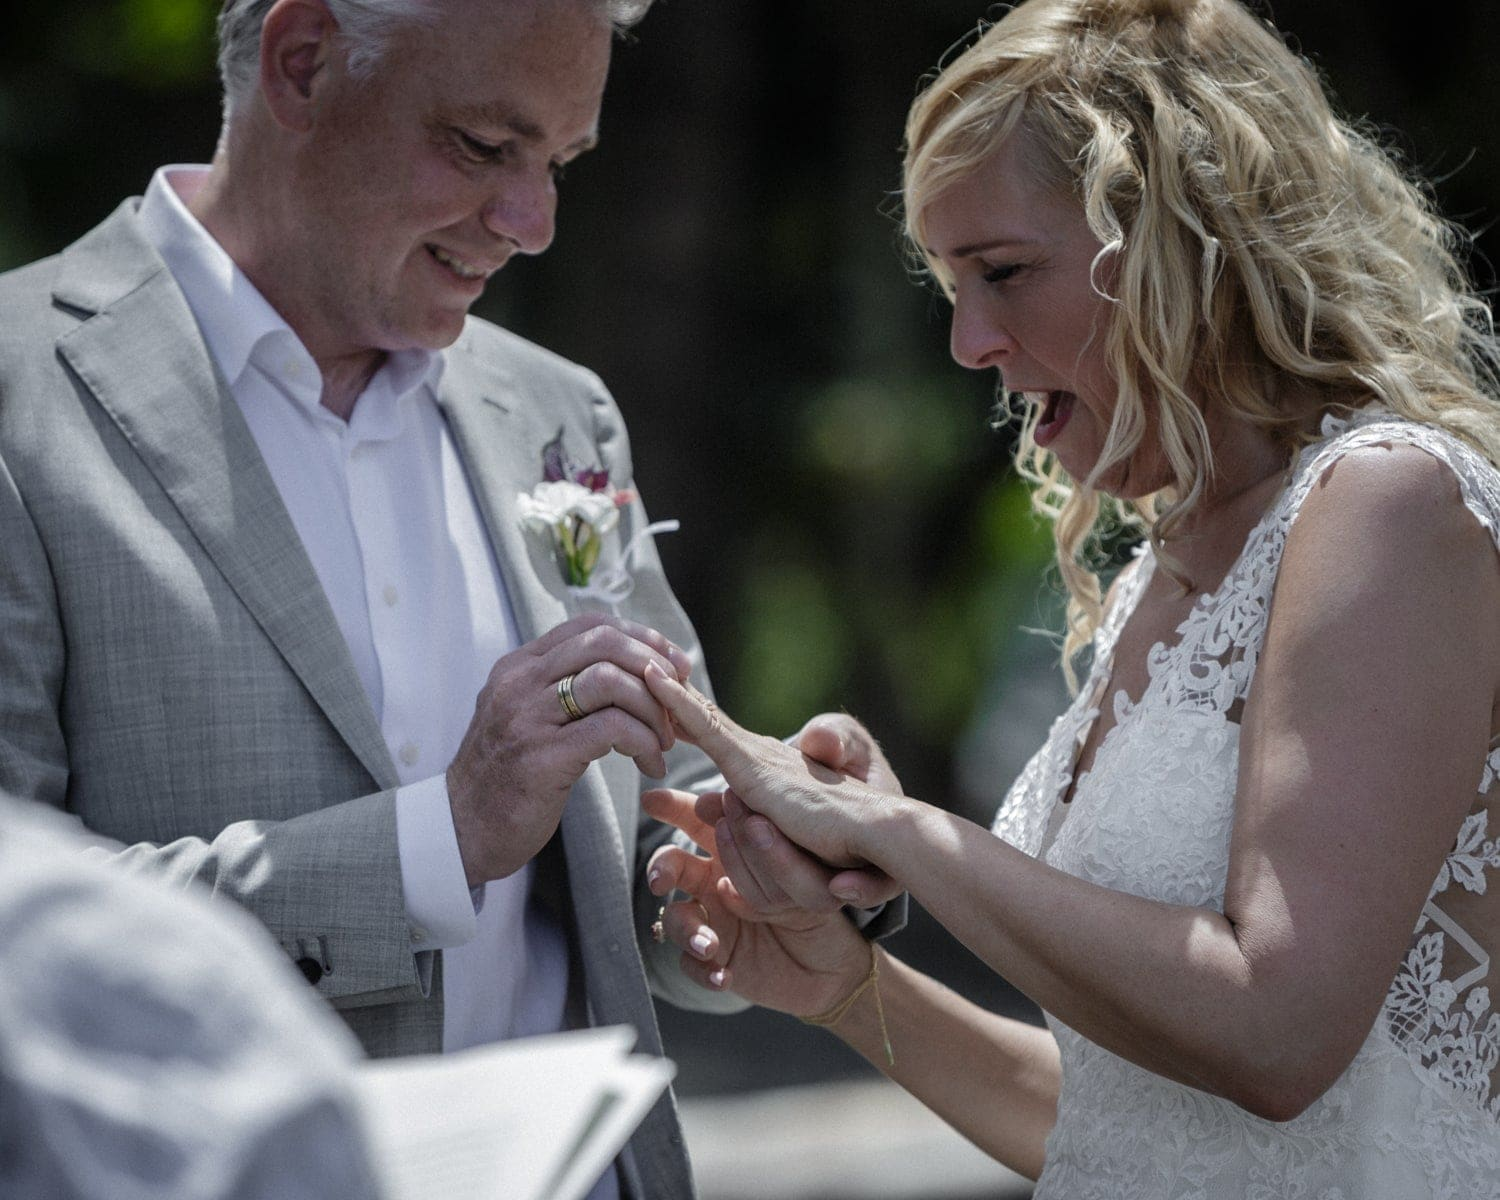 Groom puts ring on brides finger during beach wedding in Costa Rica.